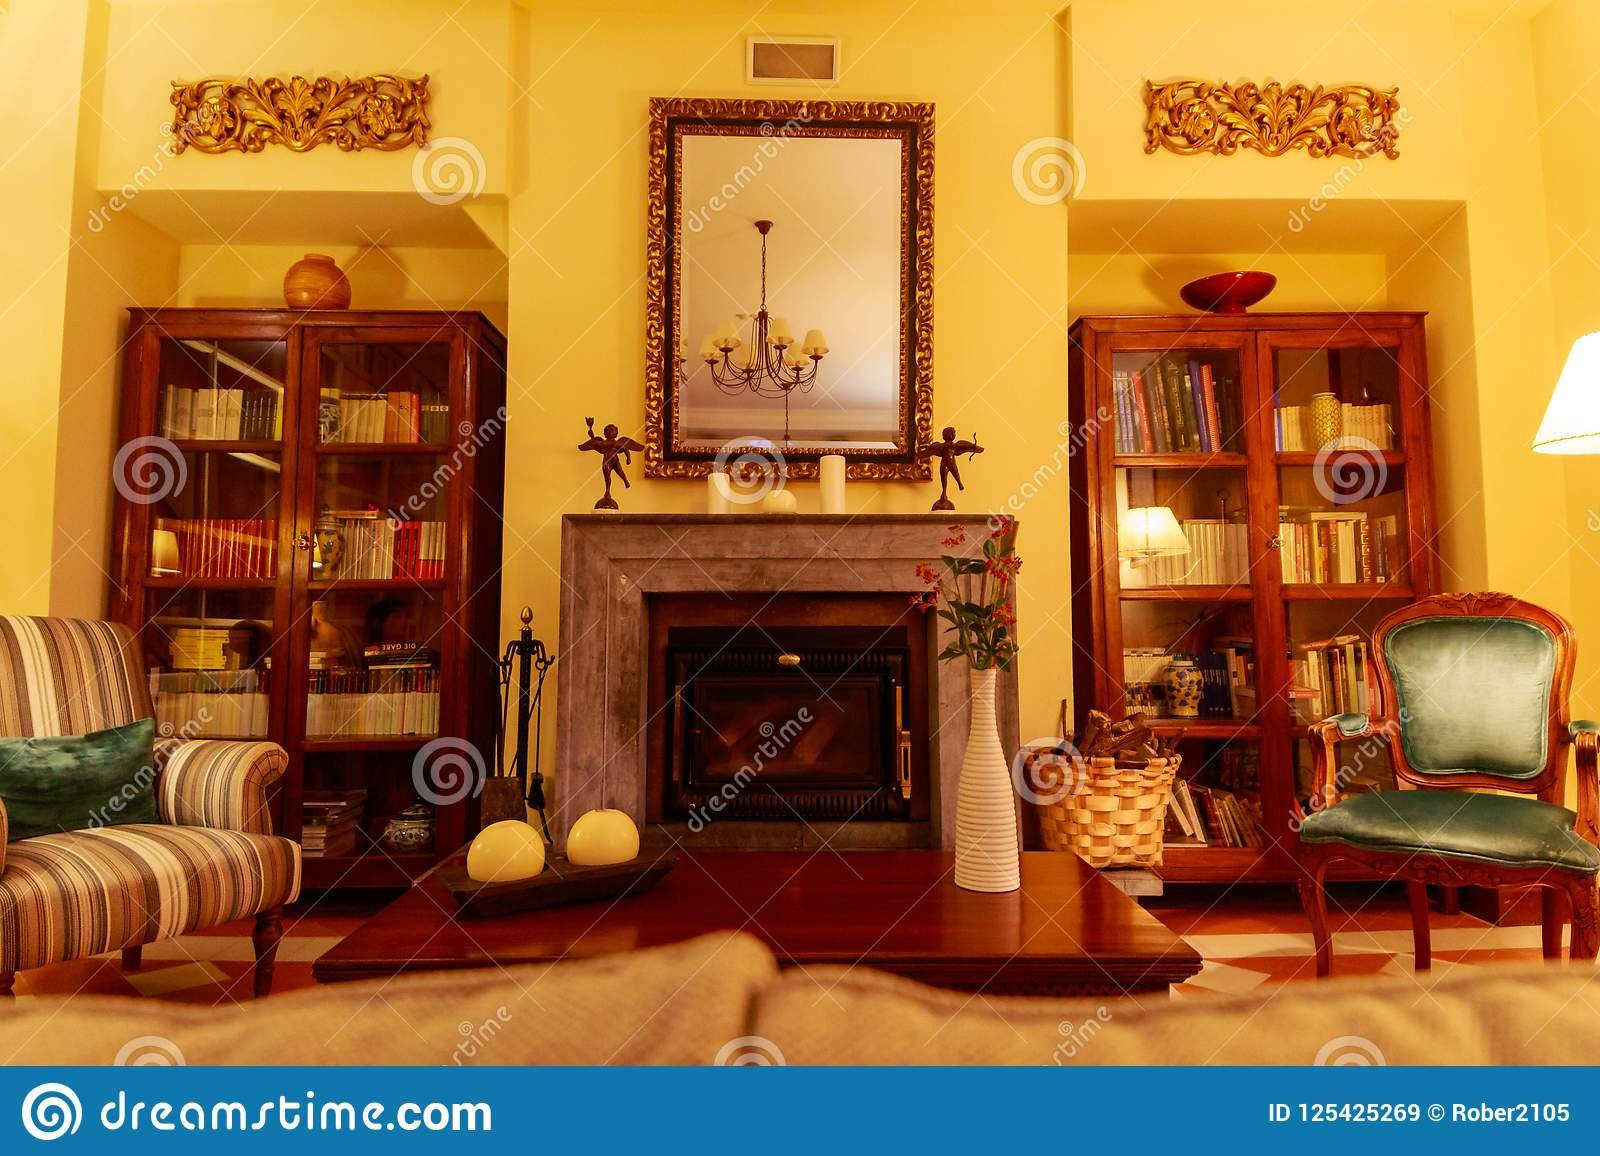 Comfortable Living Room Fireplace Beautiful and fortable Living Room with A Central